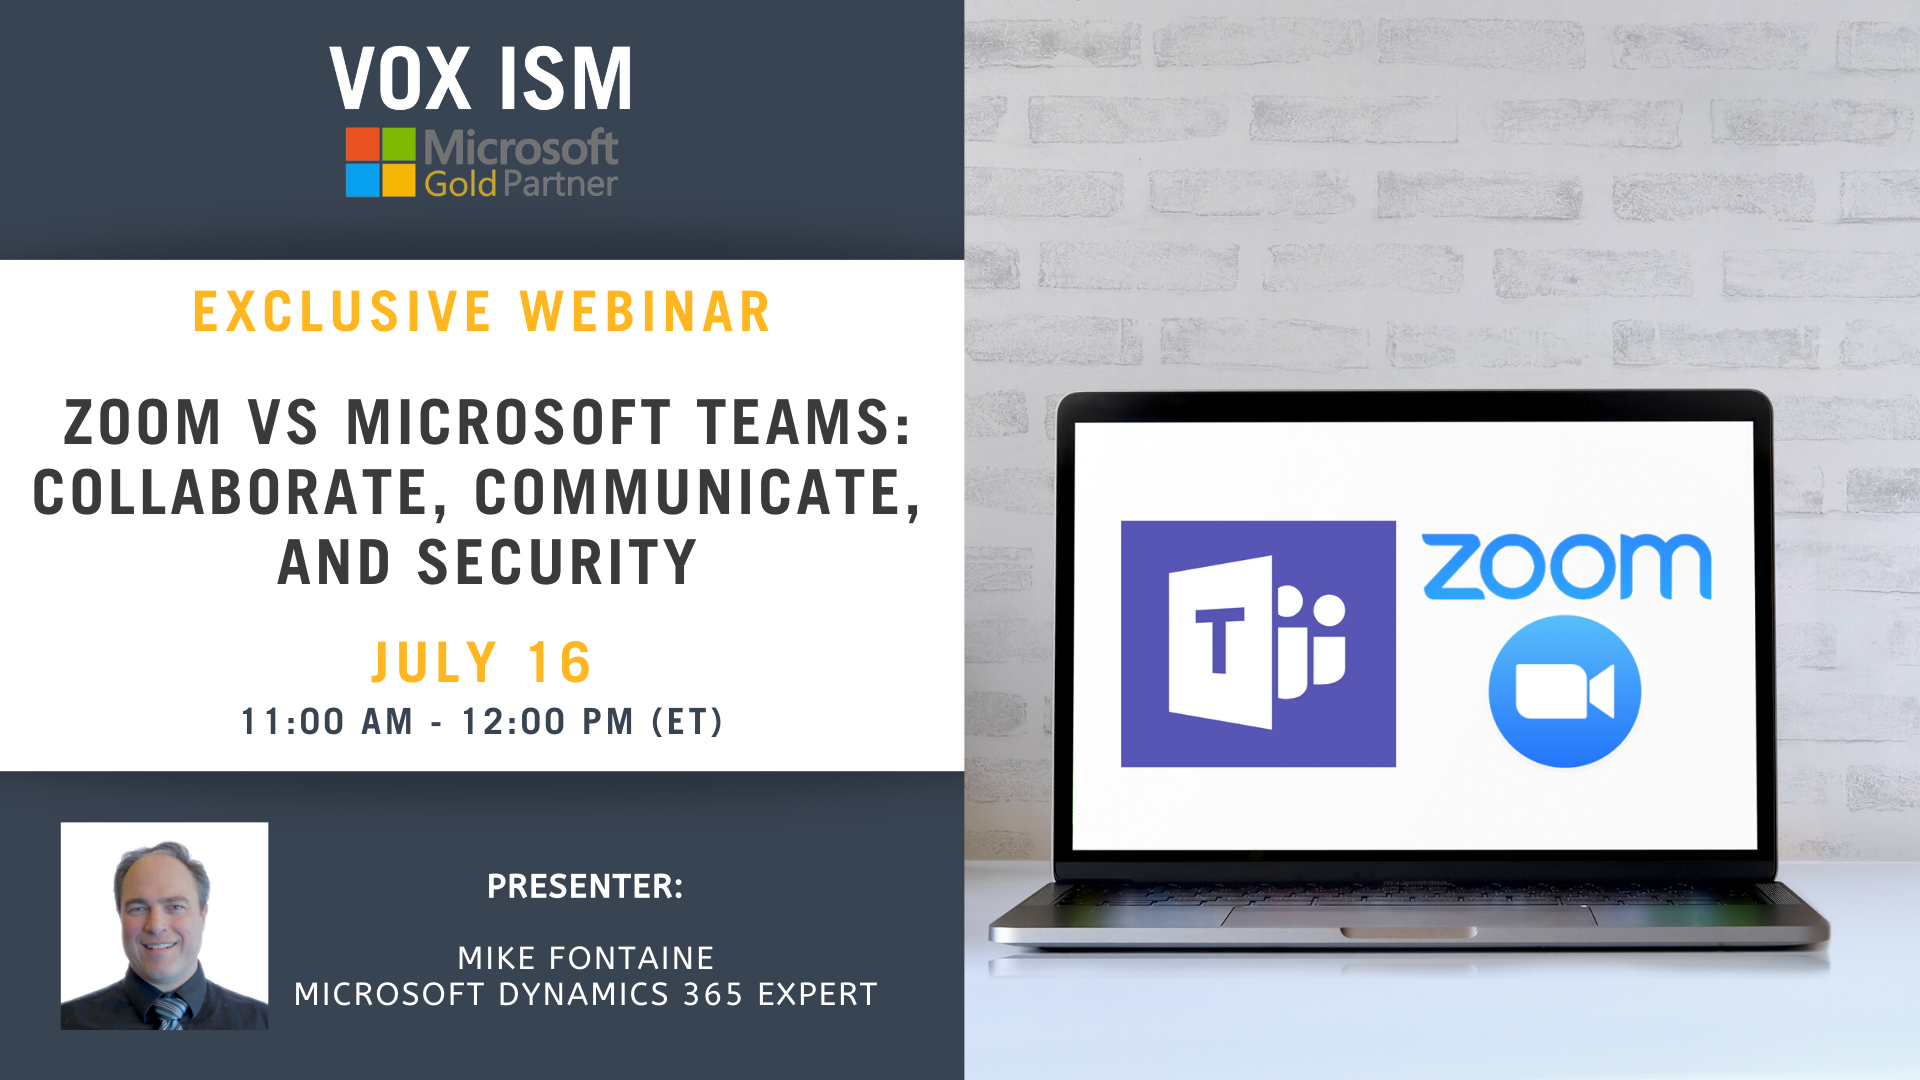 Zoom vs. Microsoft TEAMS, Collaborate, Communicate, & Security - July 16 - Webinar VOX ISM